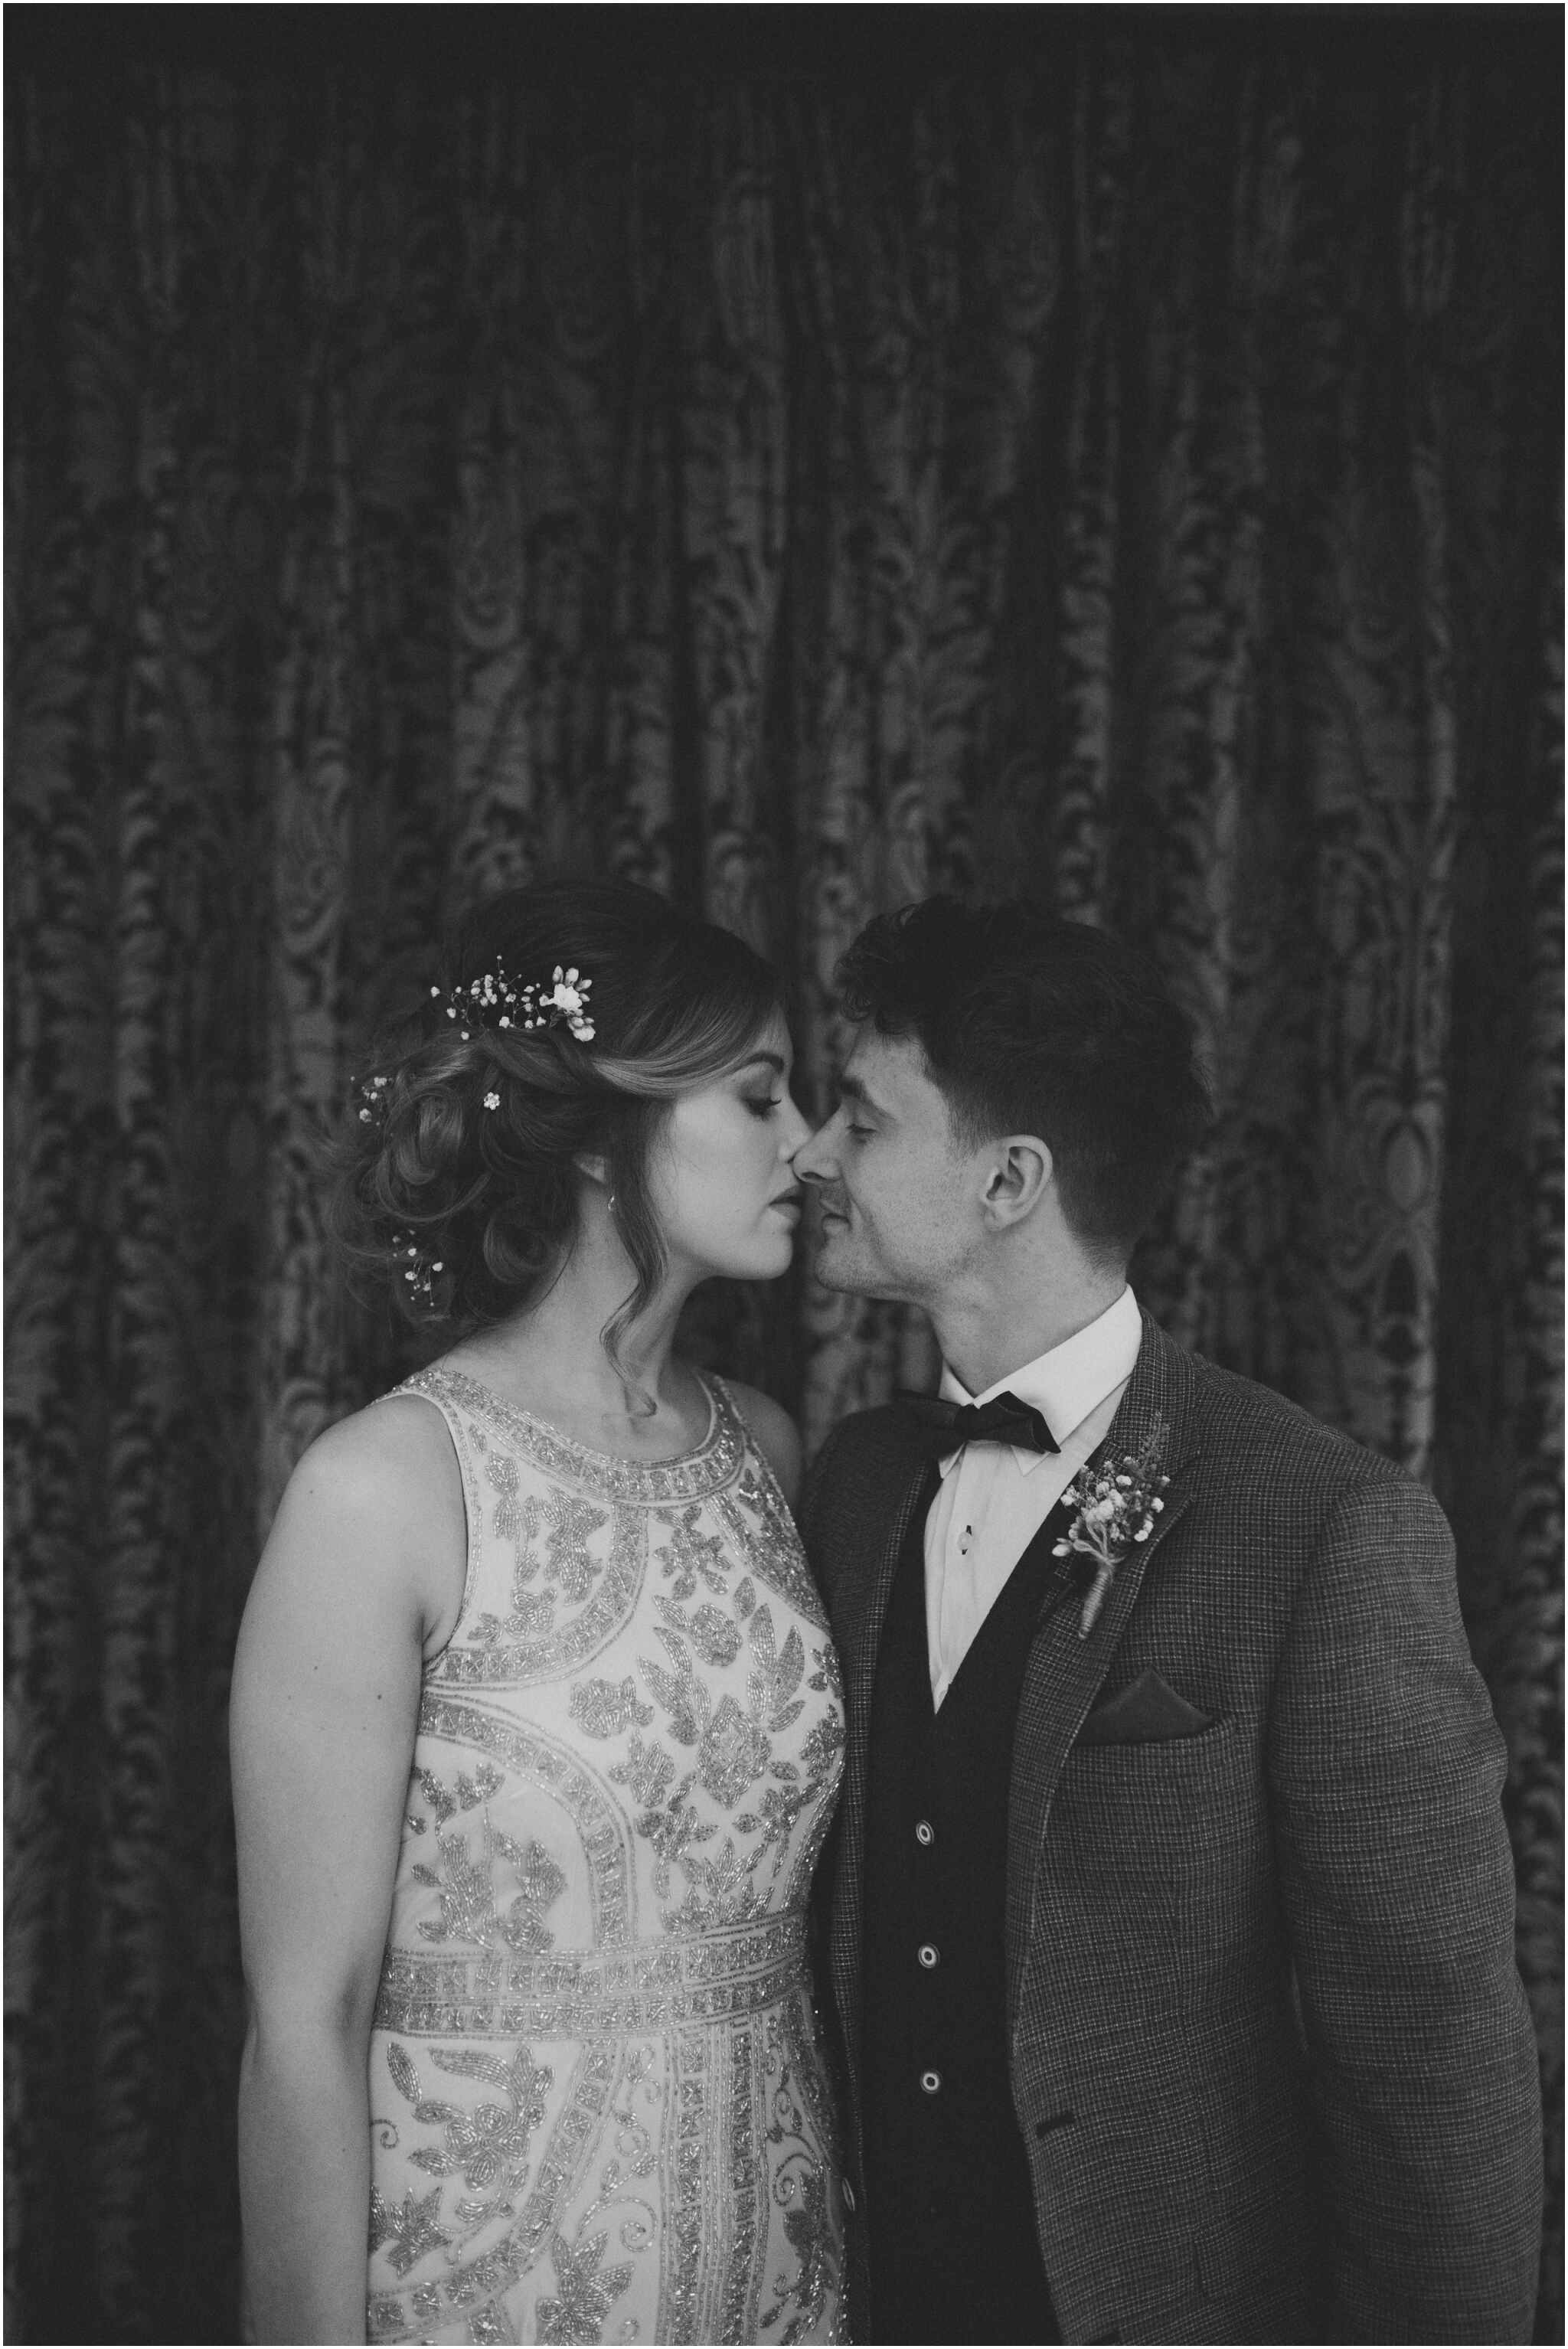 Barberstown castle Ireland Irish Castle Wedding00050 - Fun and Relaxed wedding and elopement photography in Ireland, perfect for adventurous and outdoorsy couples